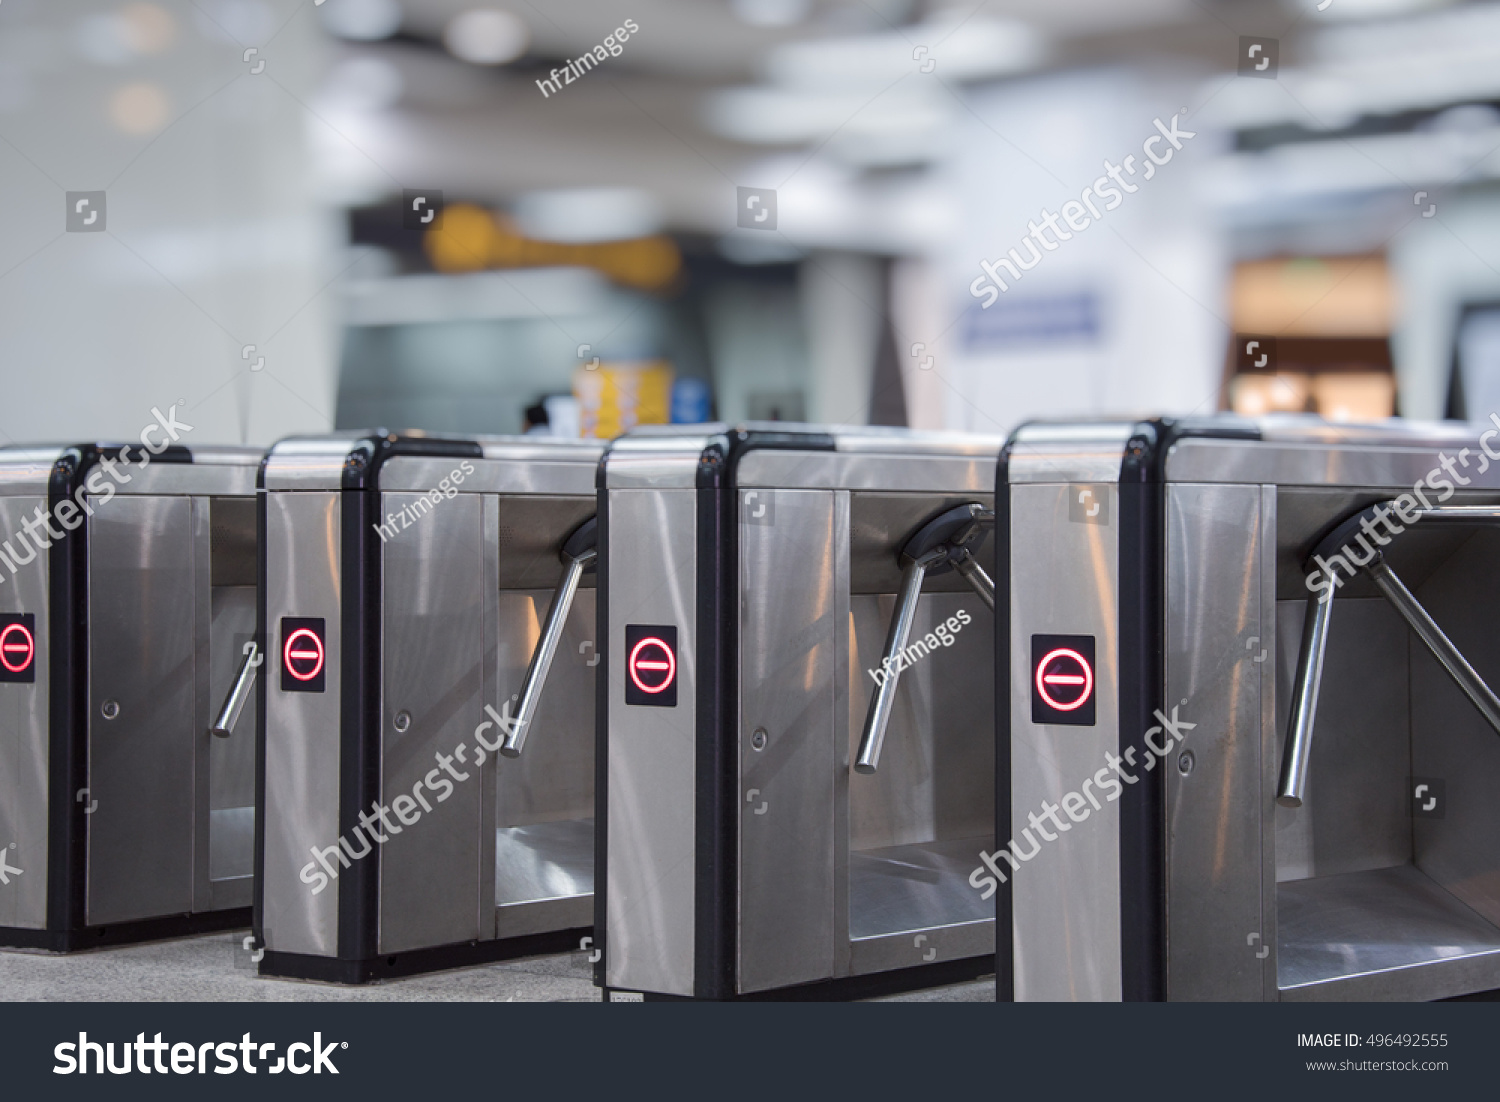 stock-photo-ticket-barriers-at-subway-entrance-in-shanghai-china-496492555